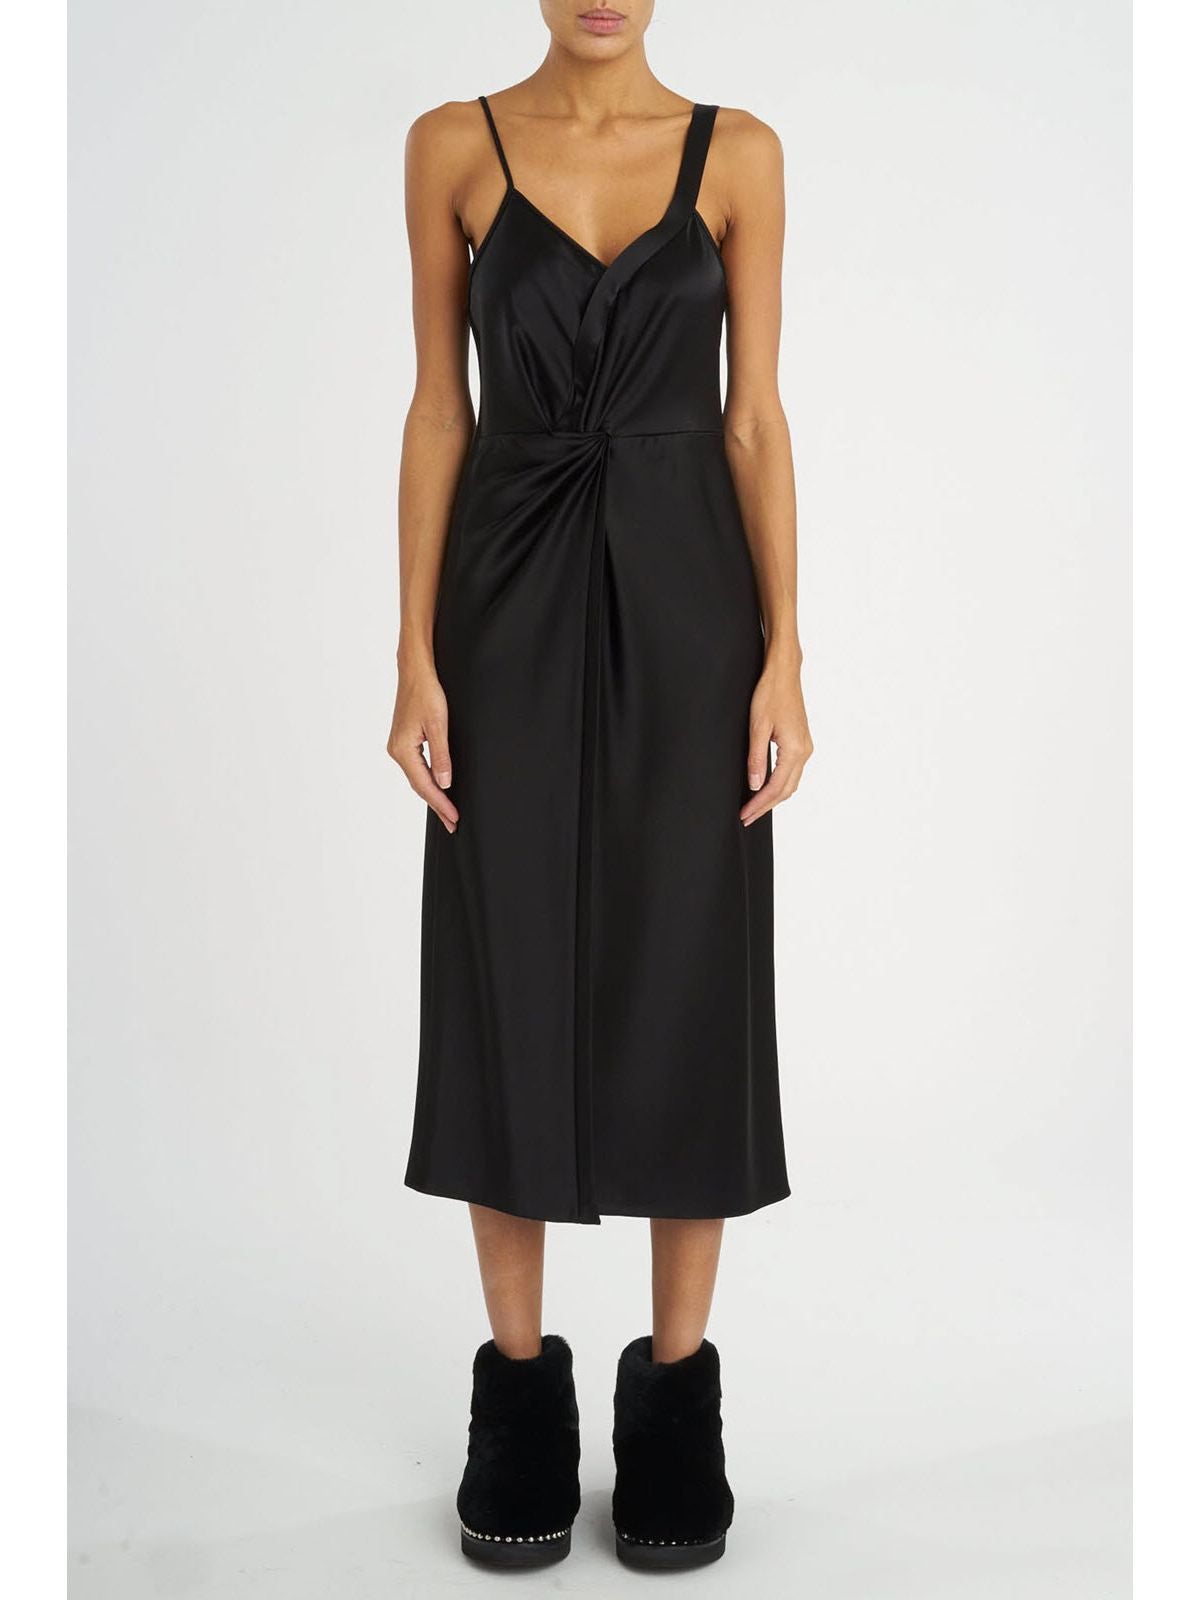 T by Alexander Wang satin knot front dress black